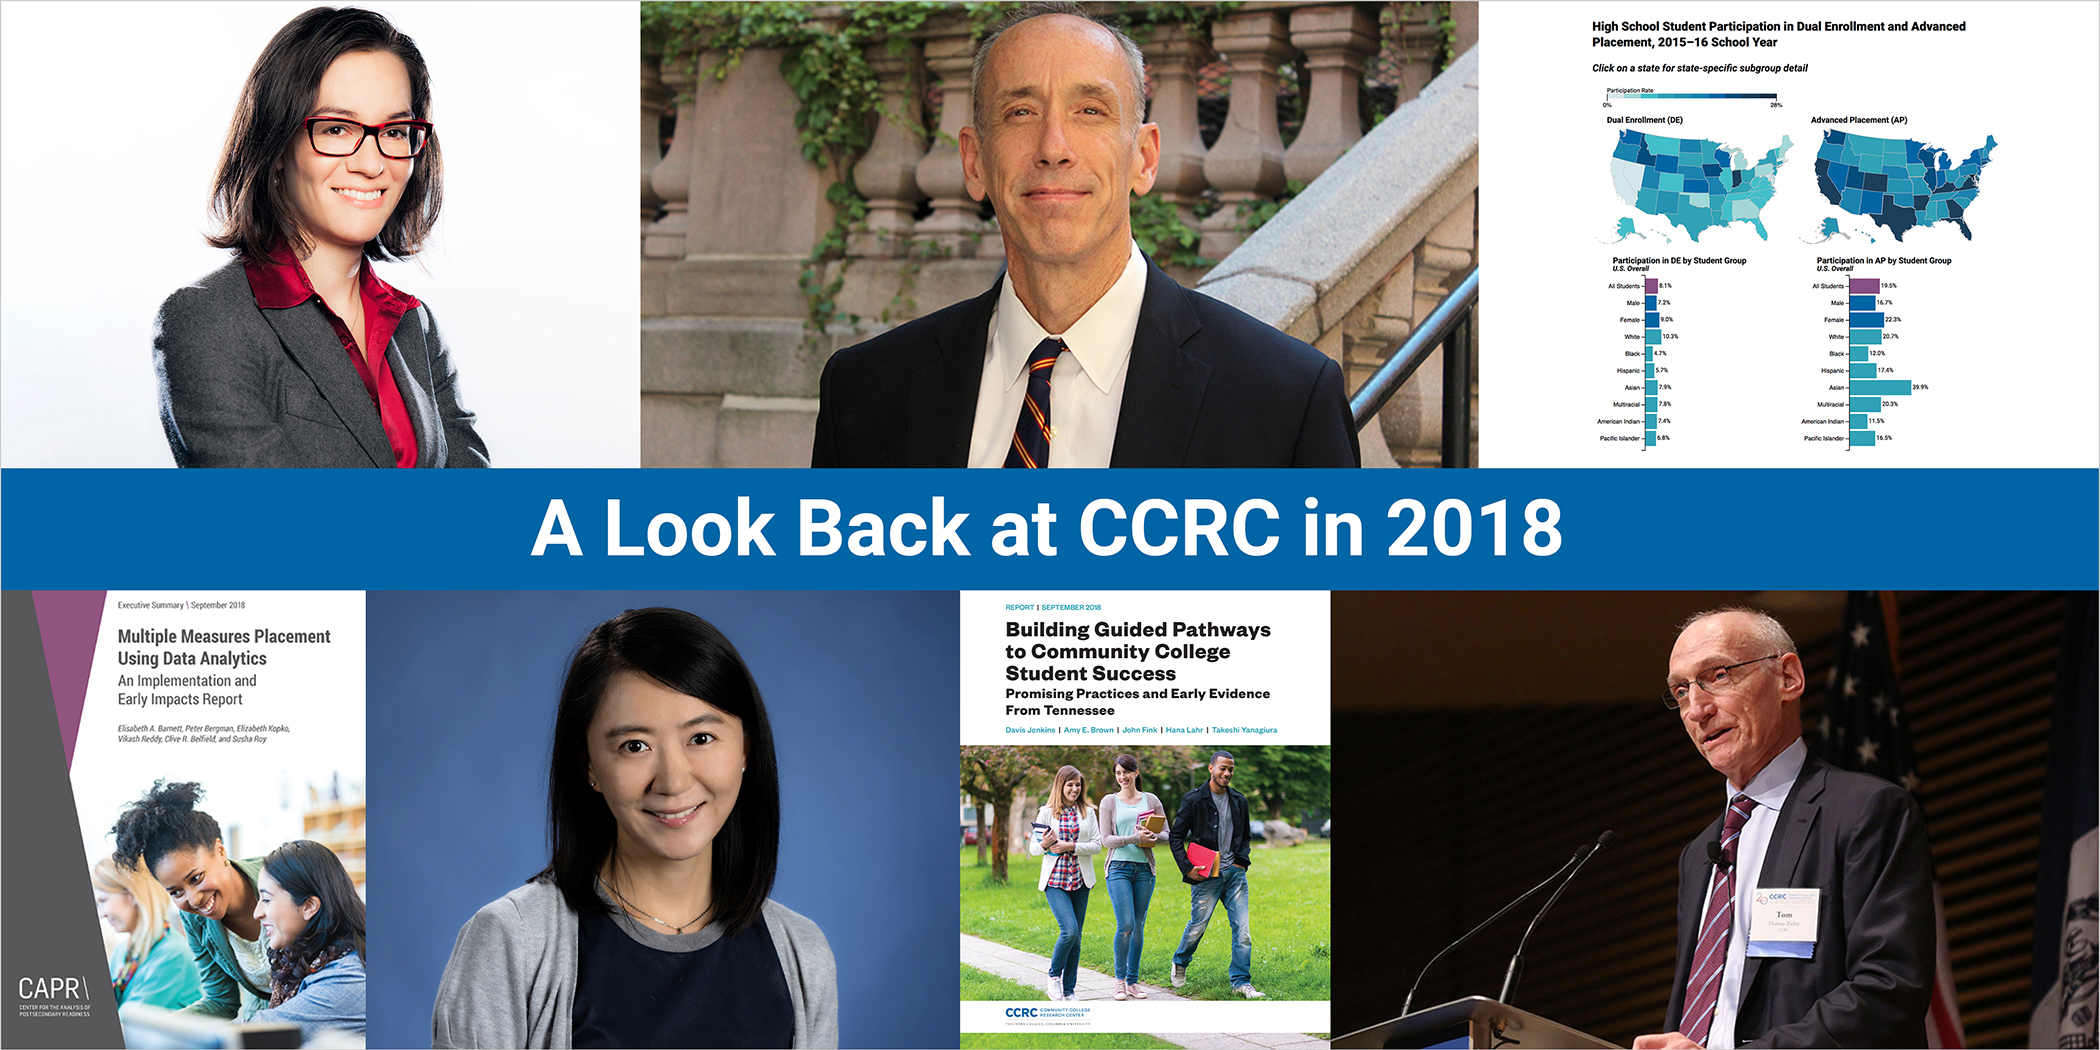 A Look Back at CCRC in 2018